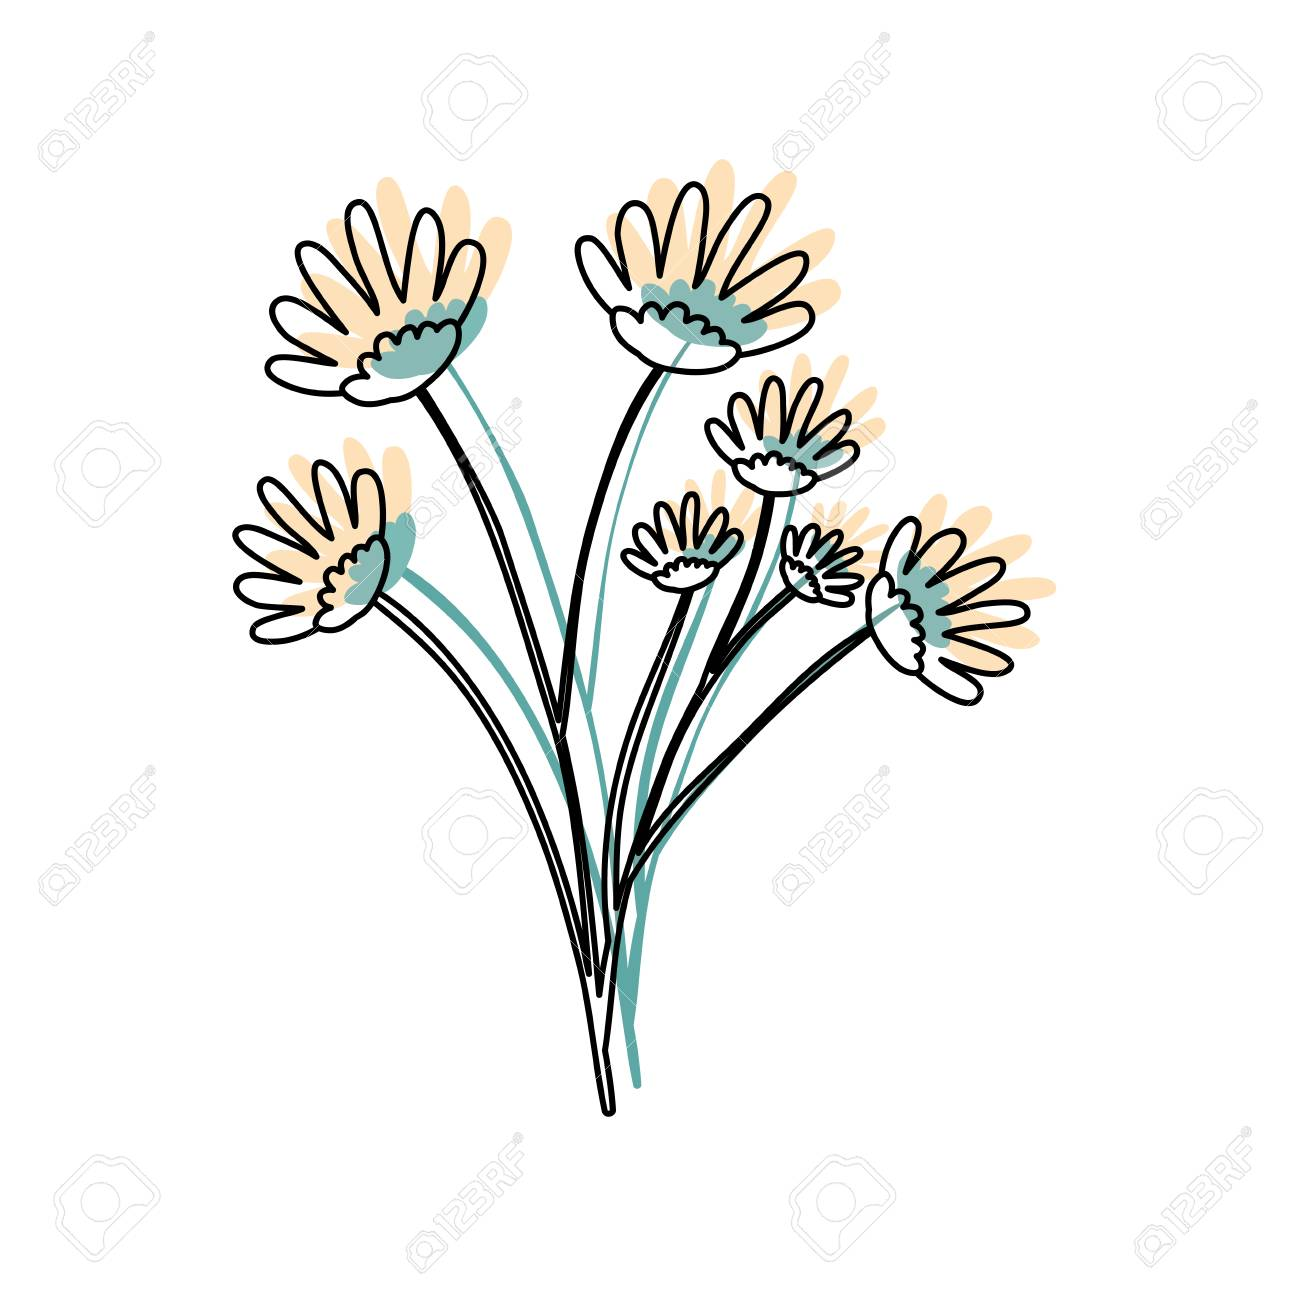 Watercolor silhouette of hand drawing yellow daisy flower bouquet vector watercolor silhouette of hand drawing yellow daisy flower bouquet with several ramifications vector illustration izmirmasajfo